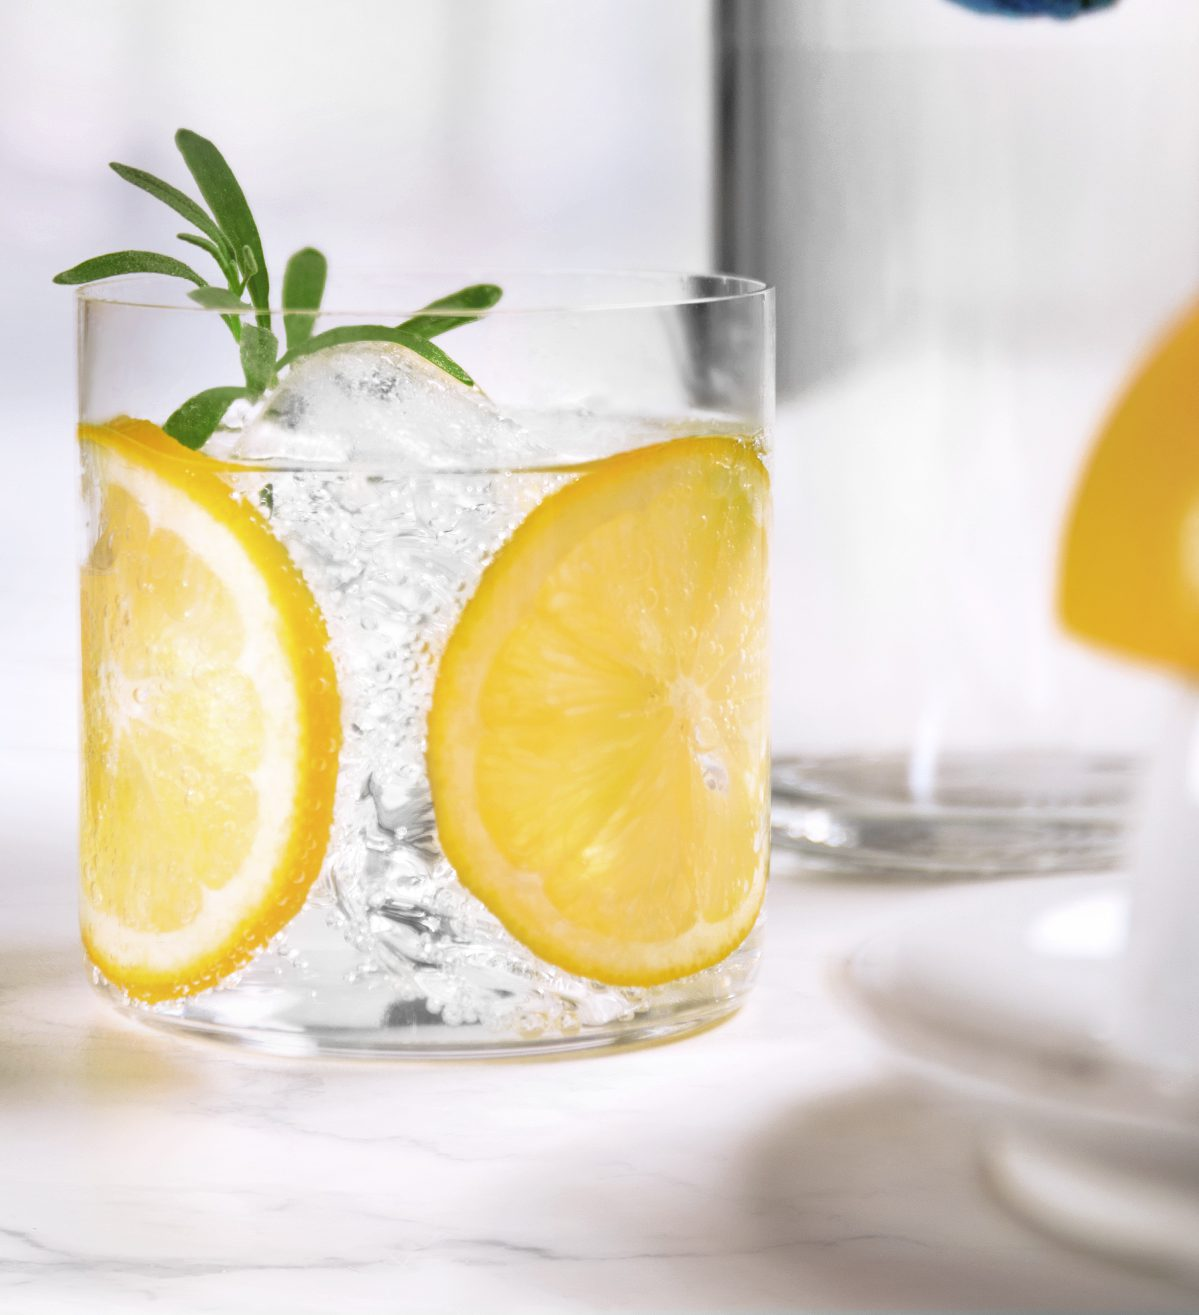 Shake first two ingredients well with ice. Strain into a rocks glass over fresh ice and stir in club soda. Top with juice from a squeezed lemon. Garnish with lemon wheel and rosemary sprig.